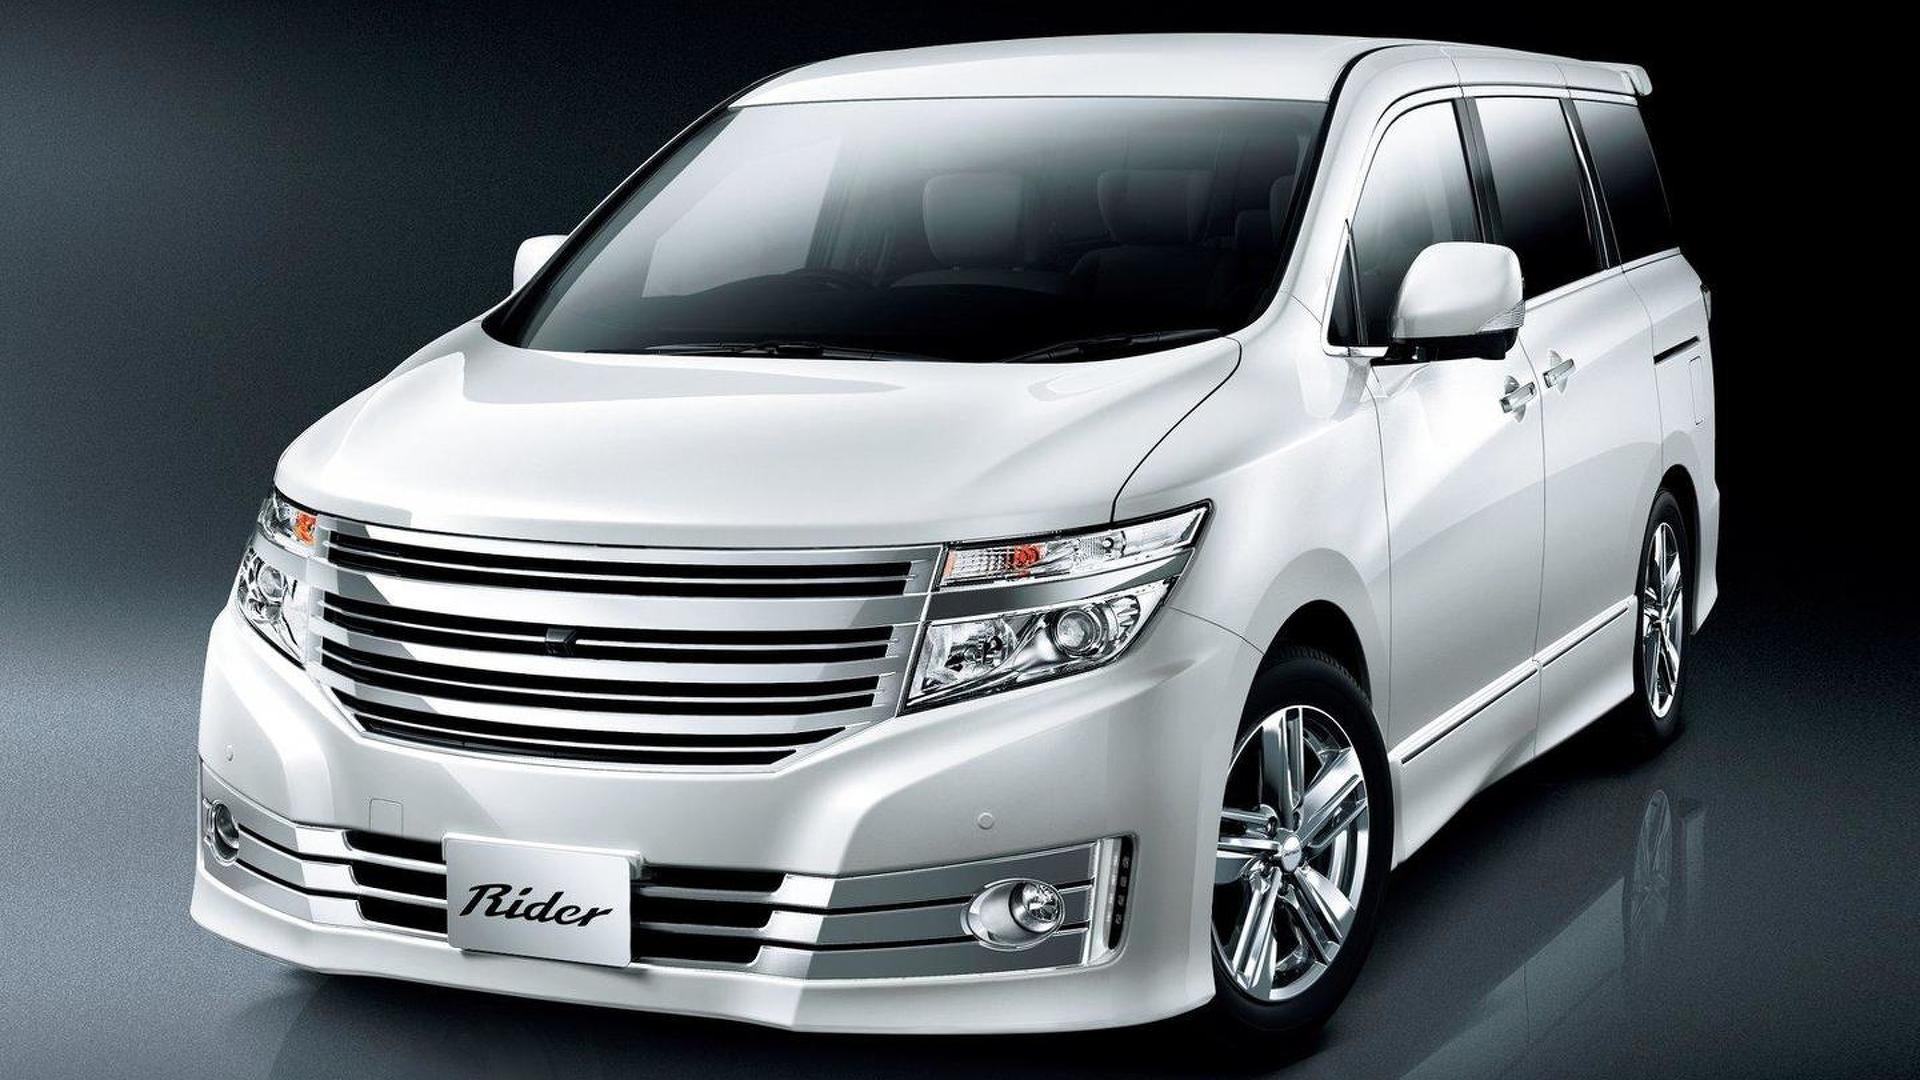 New Nissan Elgrand Luxury Minivan Debuts In Japan Previews 2011